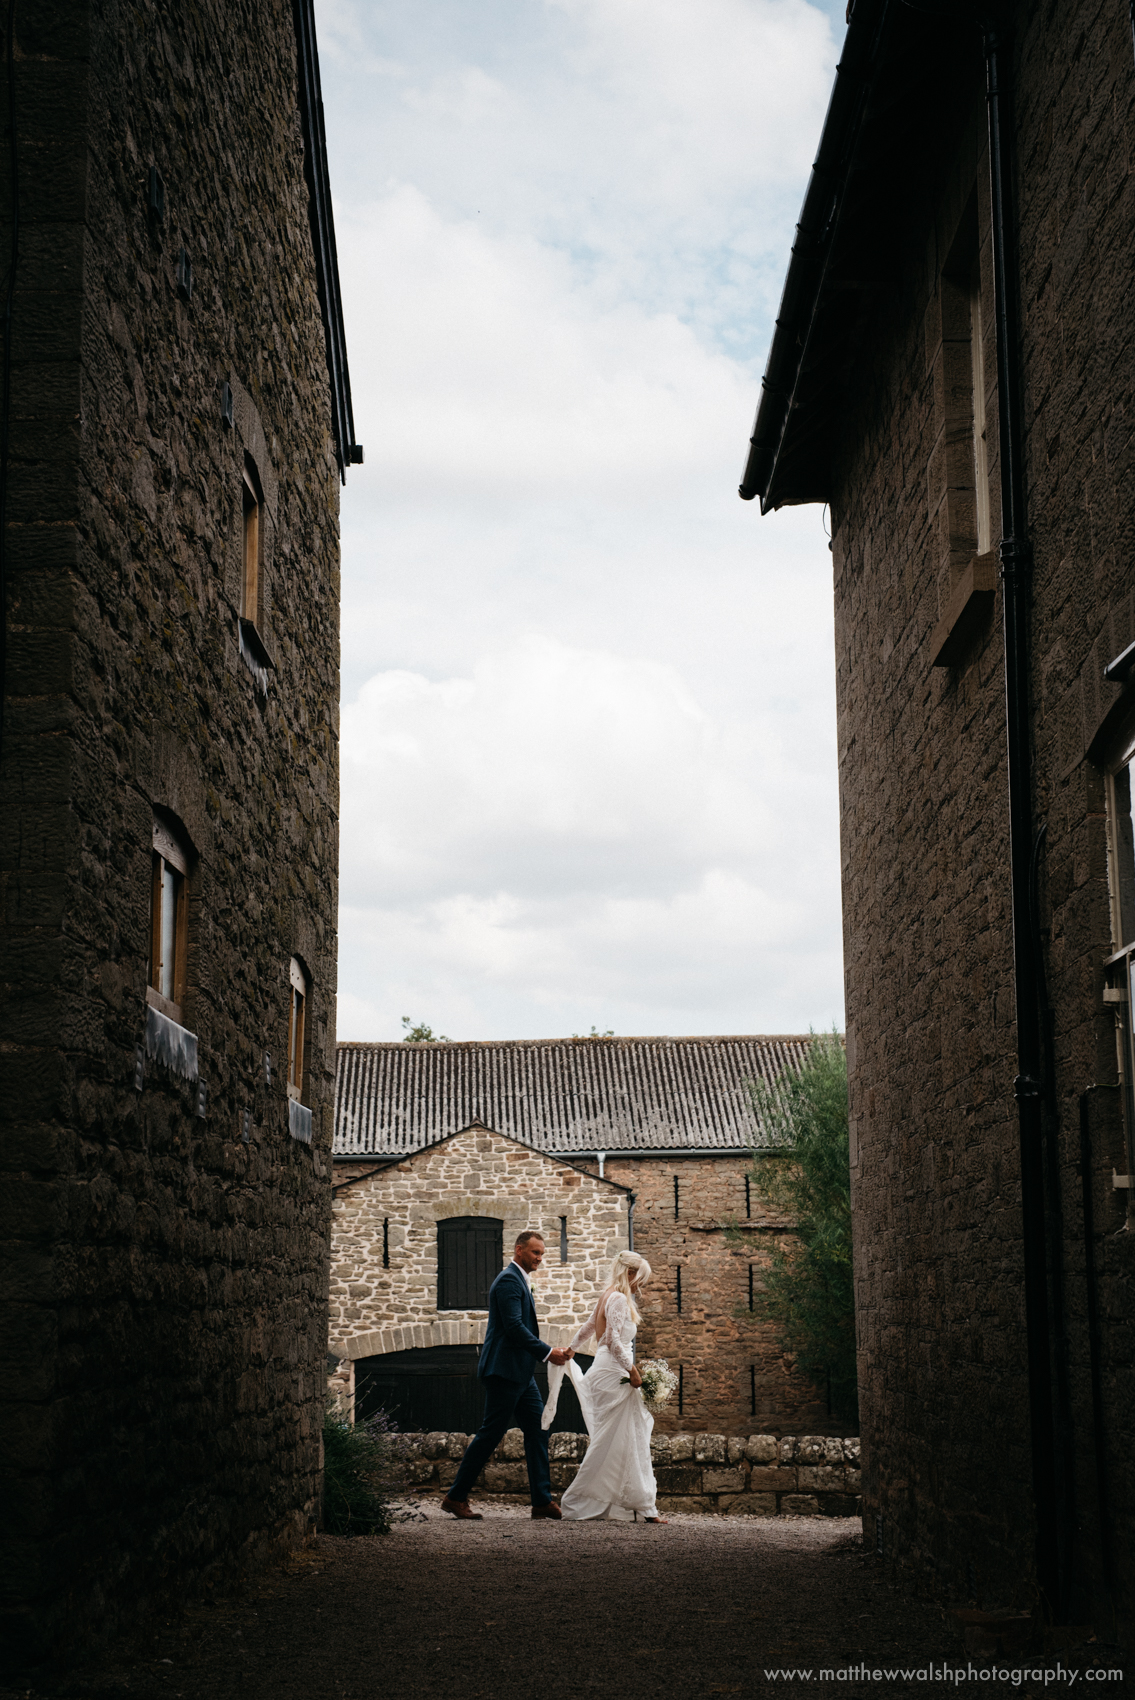 The bride and groom walking in the light, using the buildings and shadows to frame them